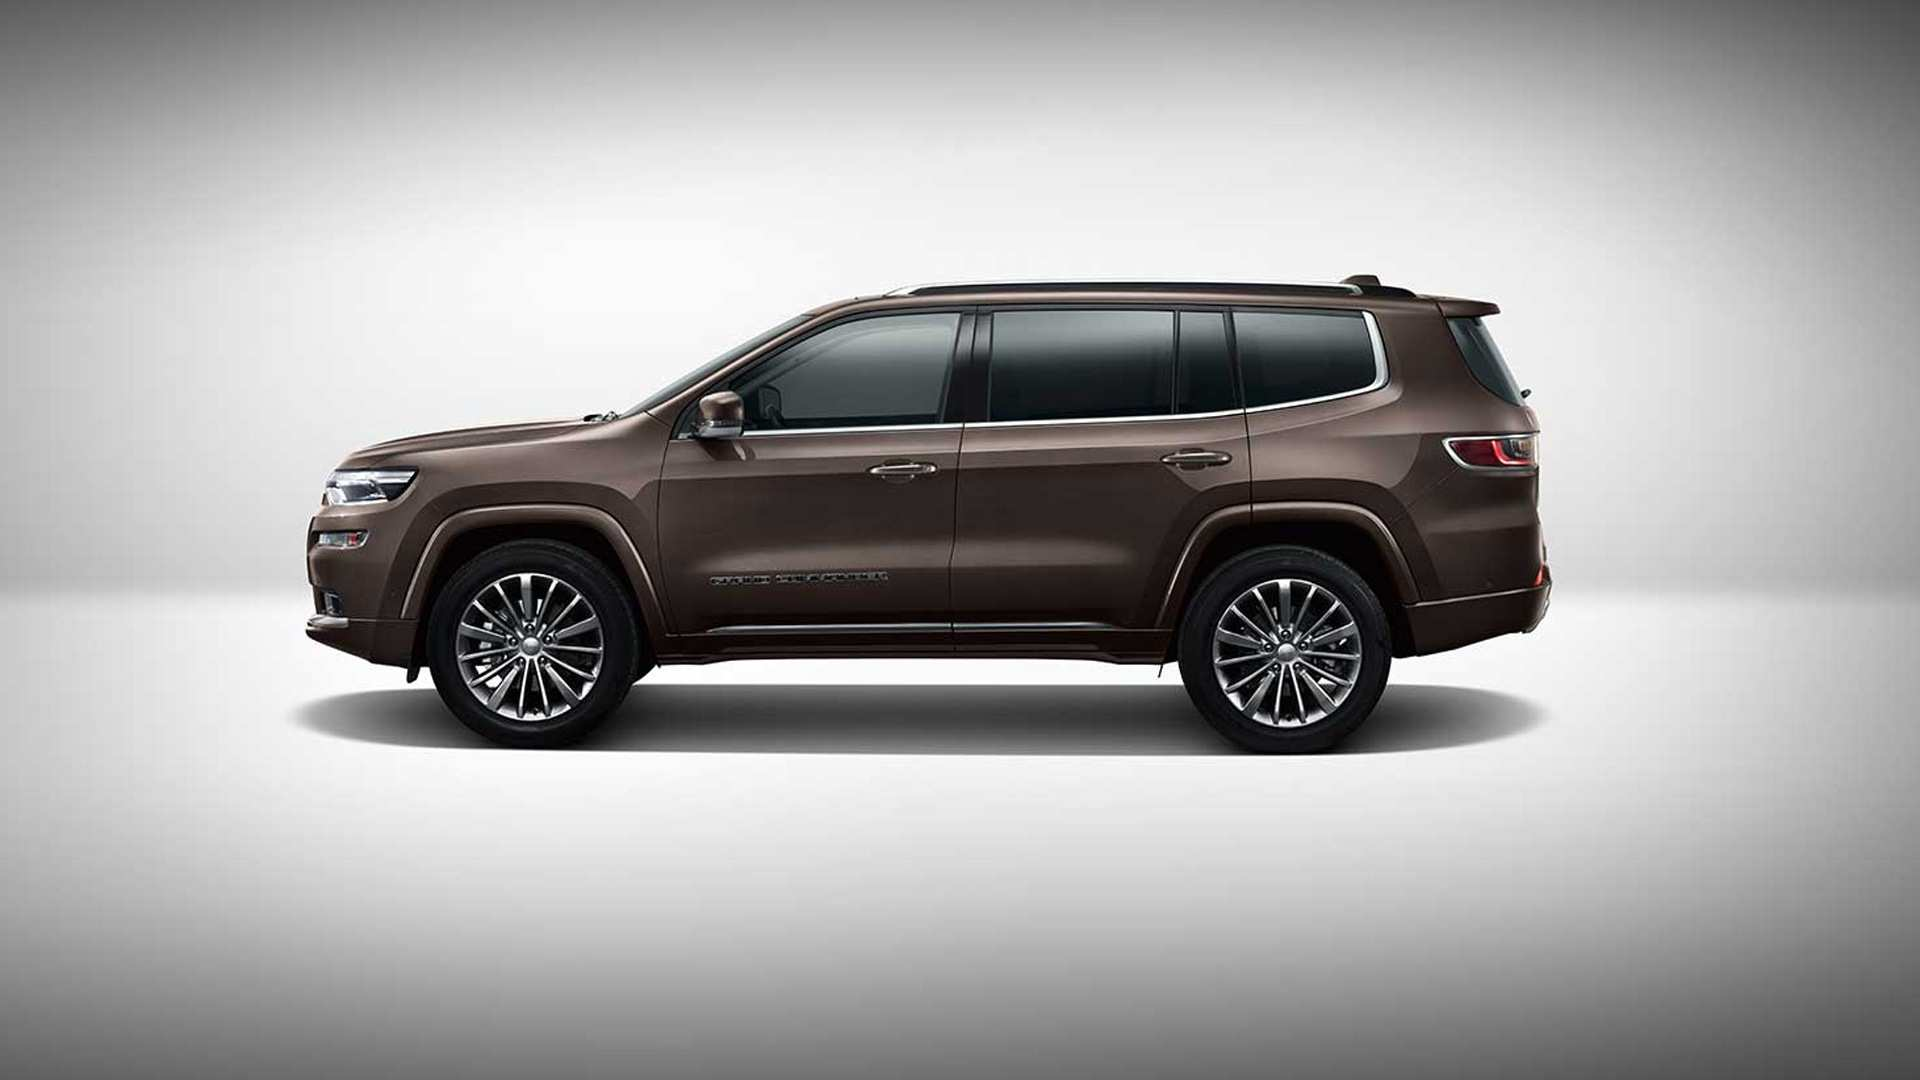 87 Best Review New Jeep Grand Commander 2019 Price Exterior with New Jeep Grand Commander 2019 Price